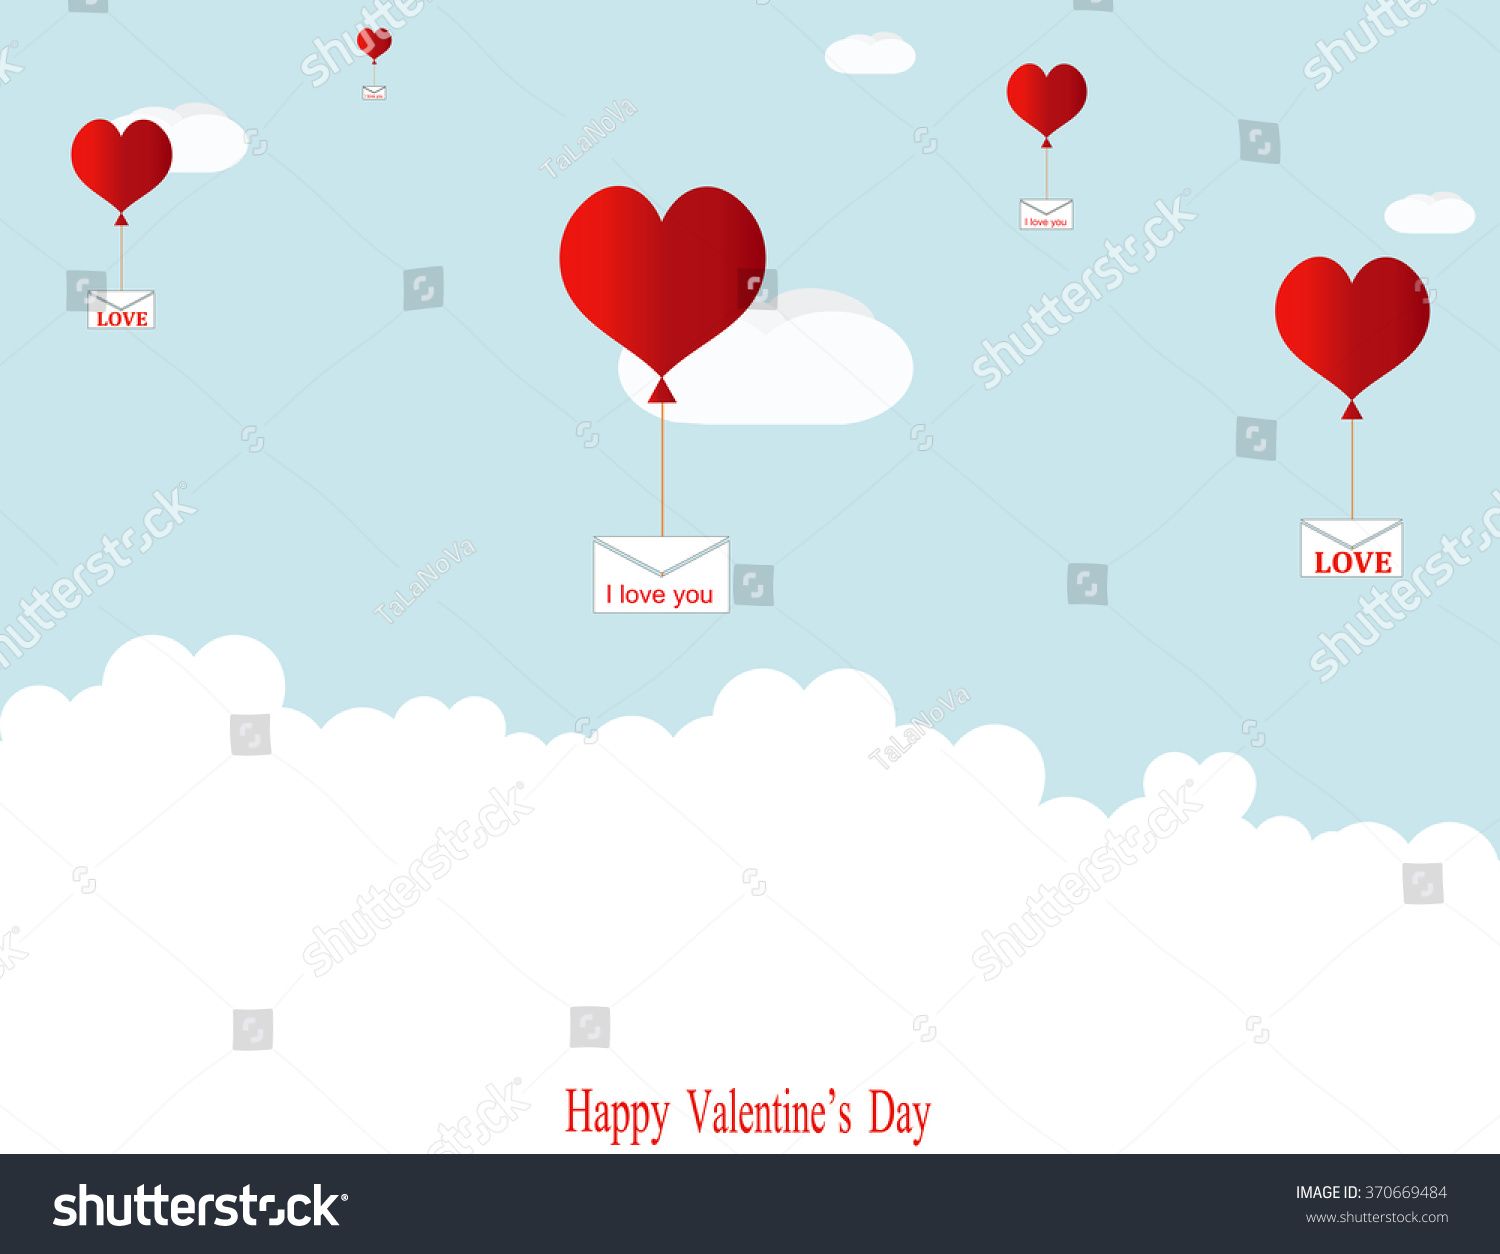 Balloons in the shape of hearts are flying among the clouds, delivering love letters. #370669484